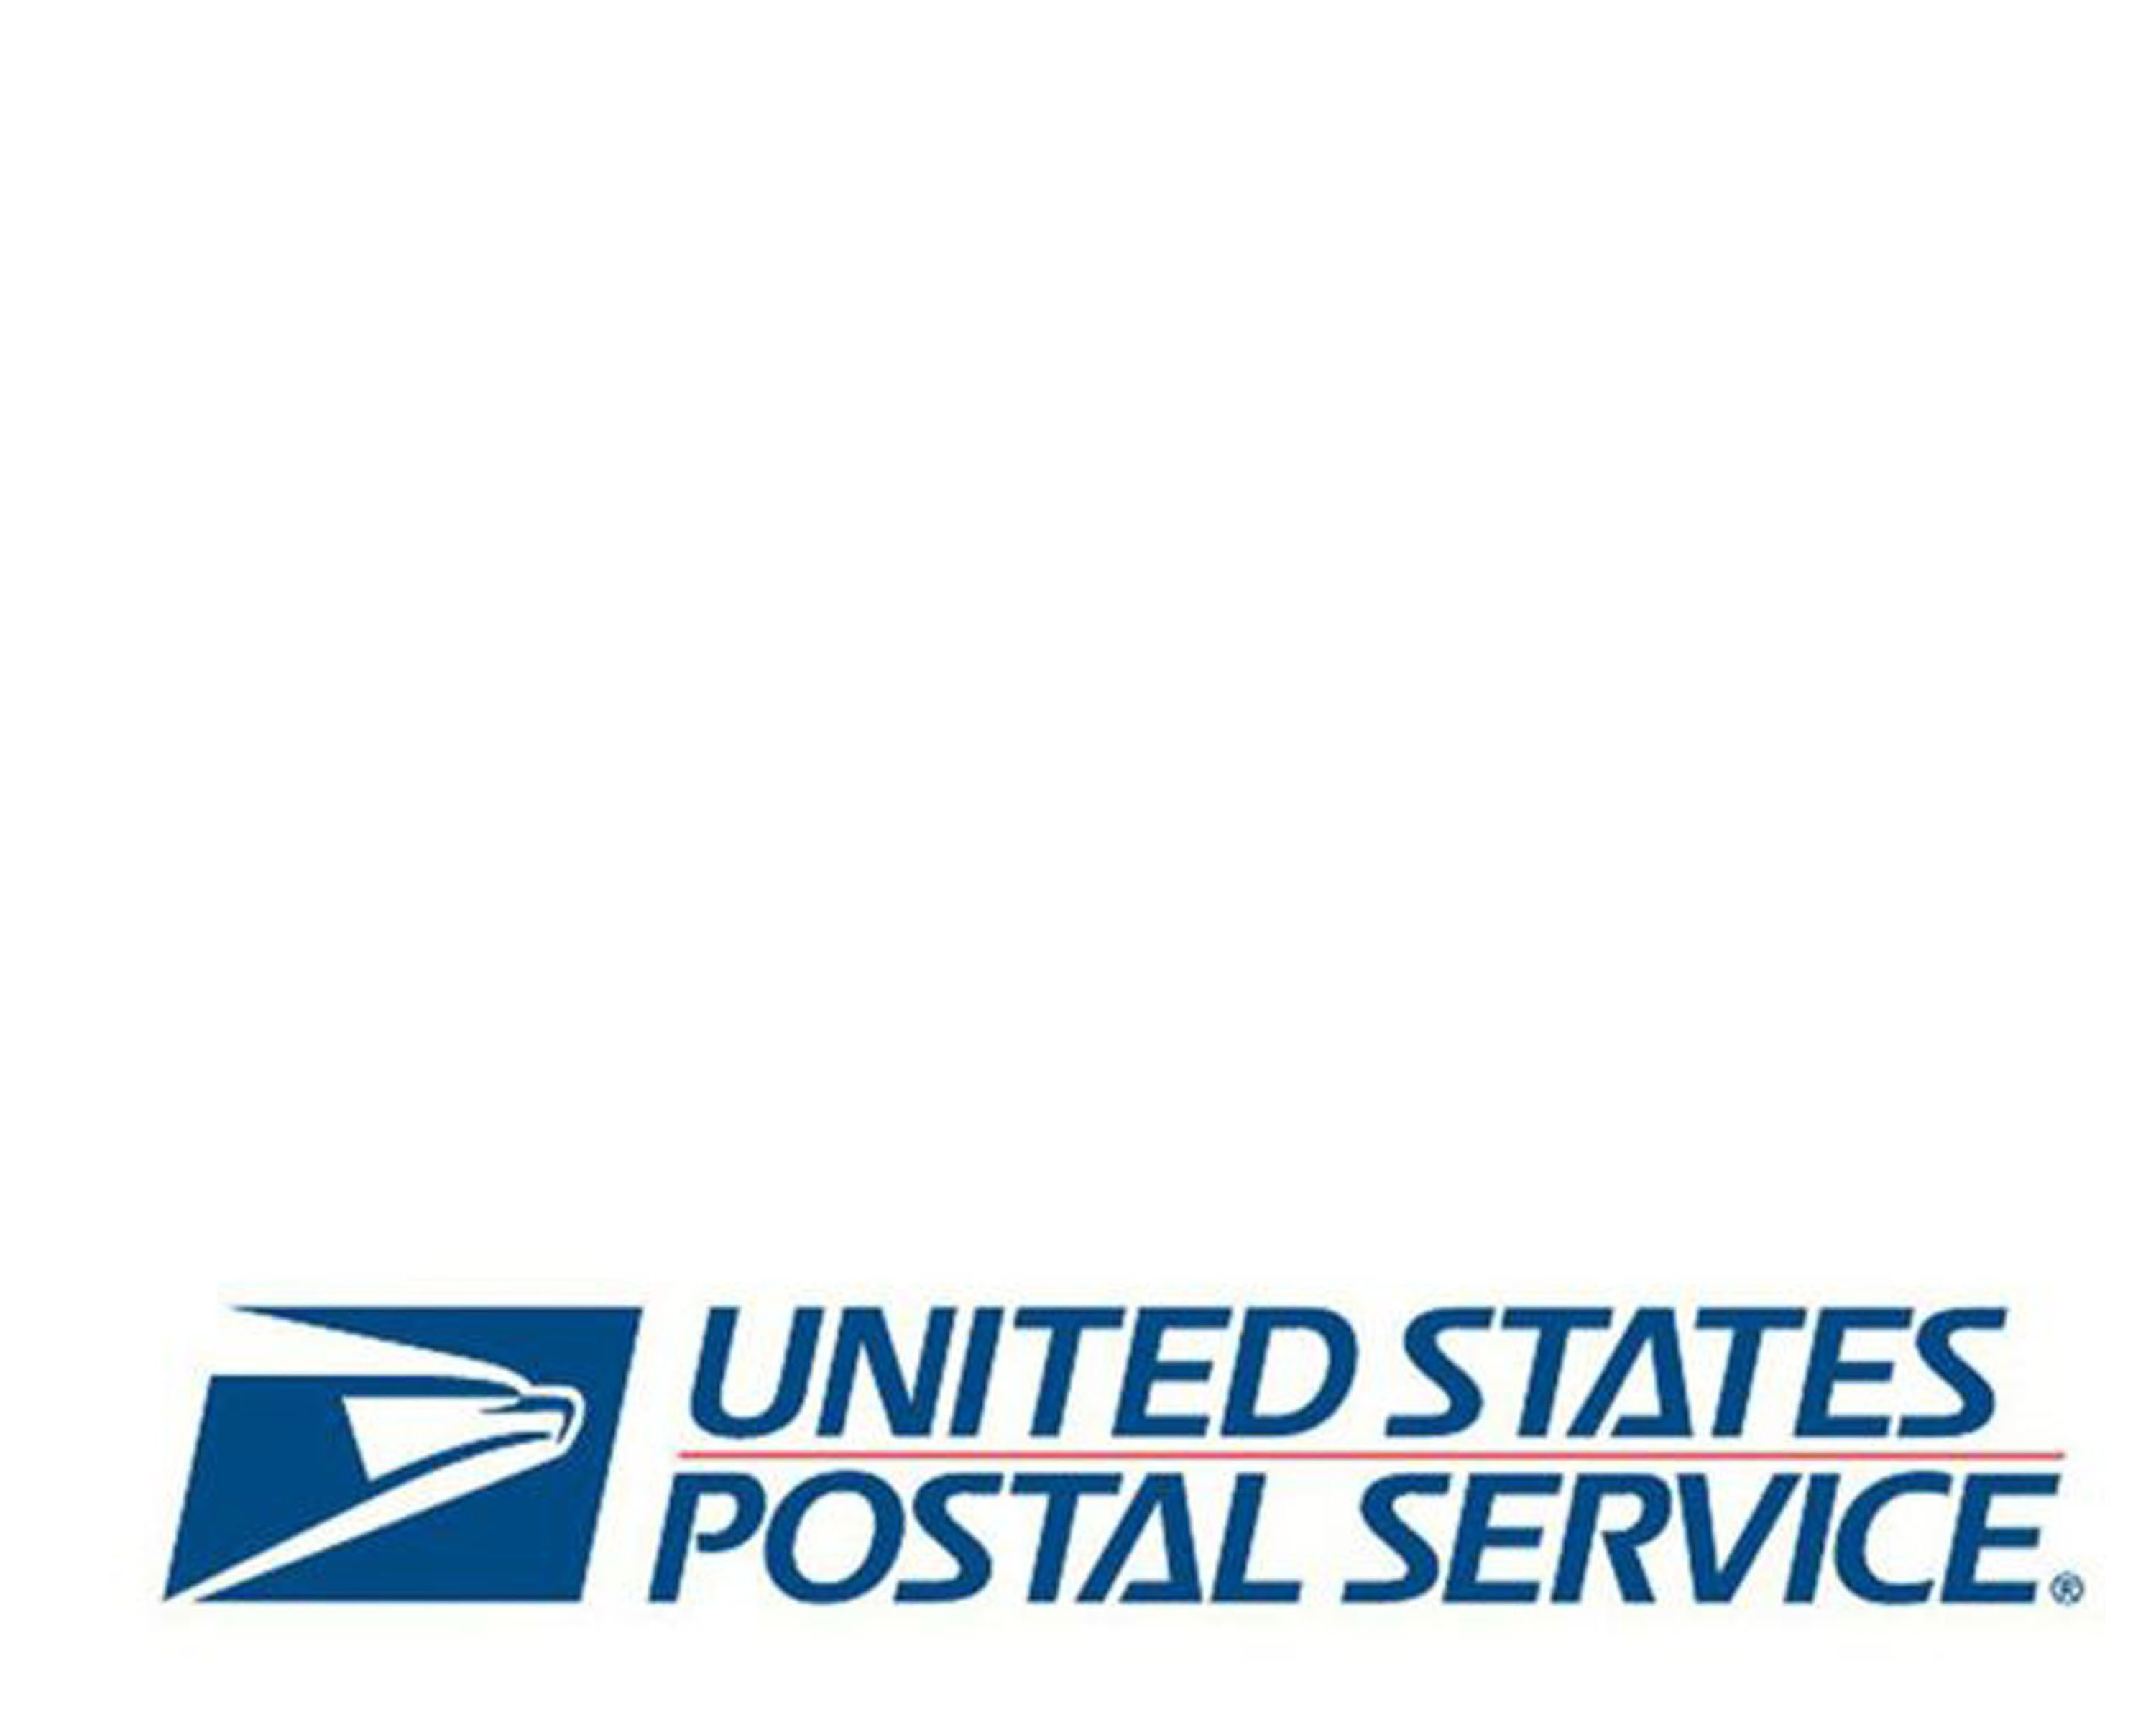 inefficiency of the united states postal service English: note that us stamp designs since 1978 are copyrighted by the united states postal service, and not in the public domain up to the end of 1977 the designs are all pd in the us.